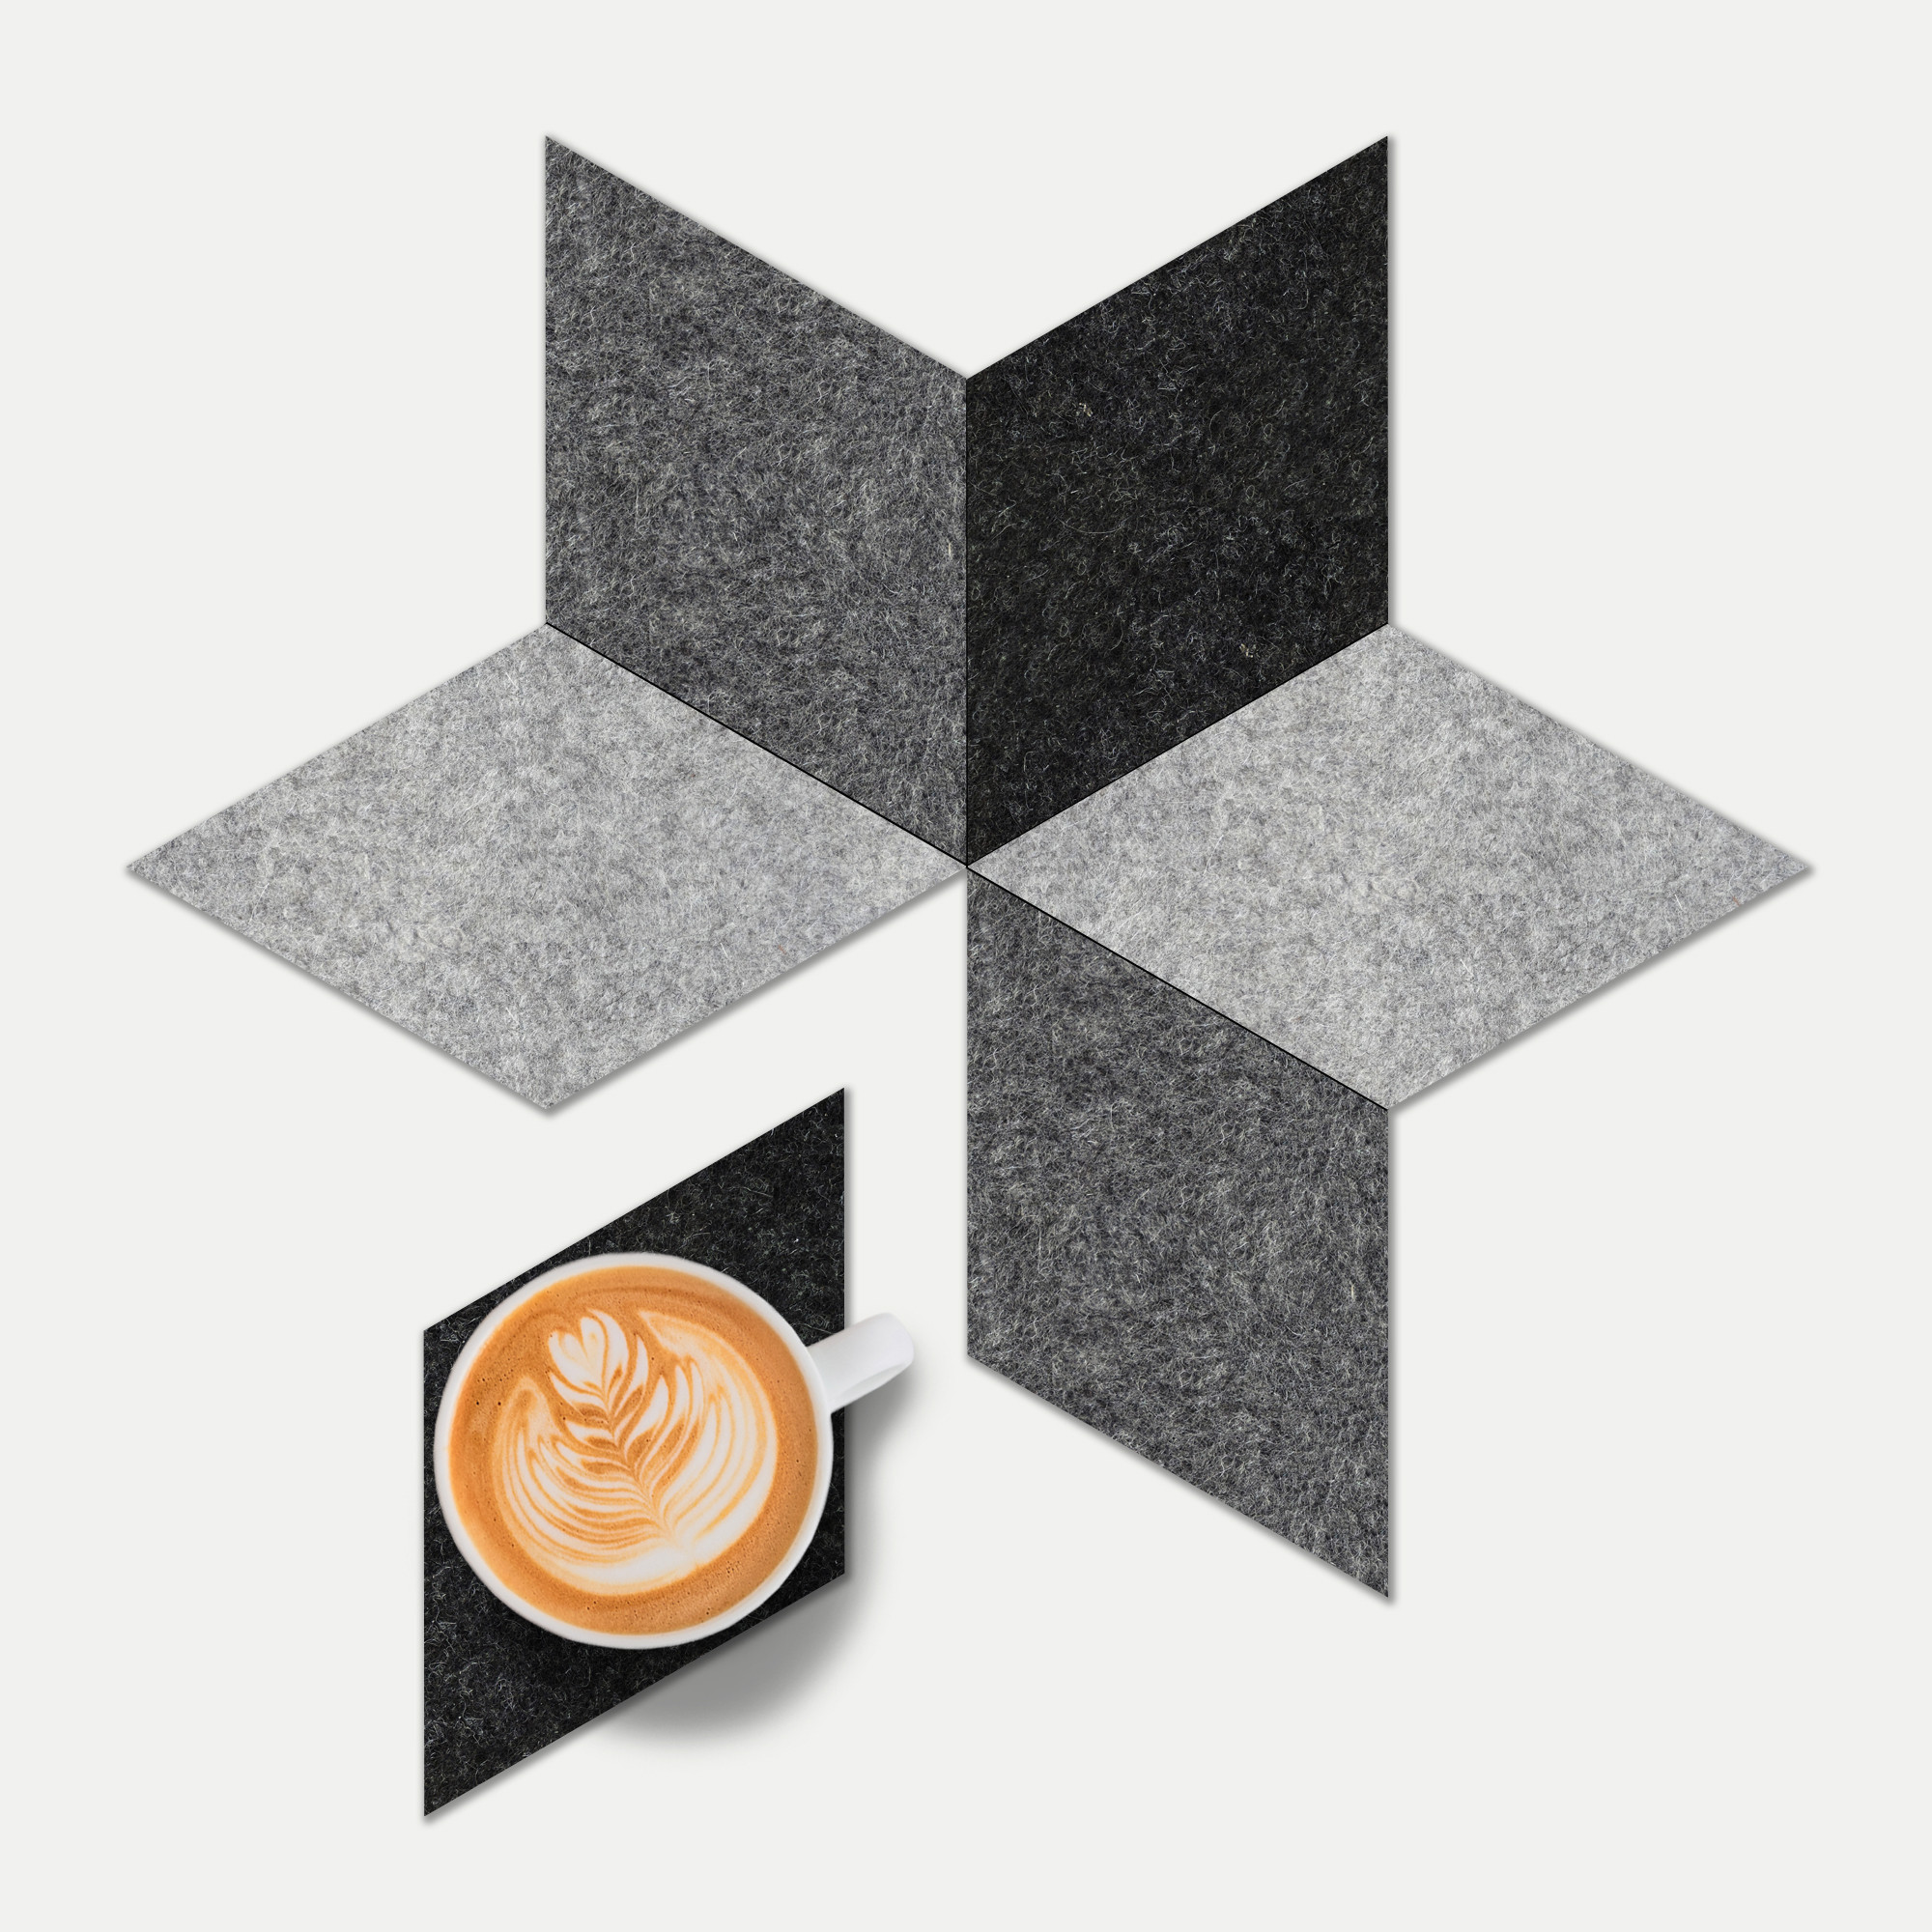 Star Set - A versatile six piece coaster set, made from shades of premium grey felt. This 3D effect adds a unique and modern feature to your coffee table.£16.00 for 6Available at www.geometrico.co.uk